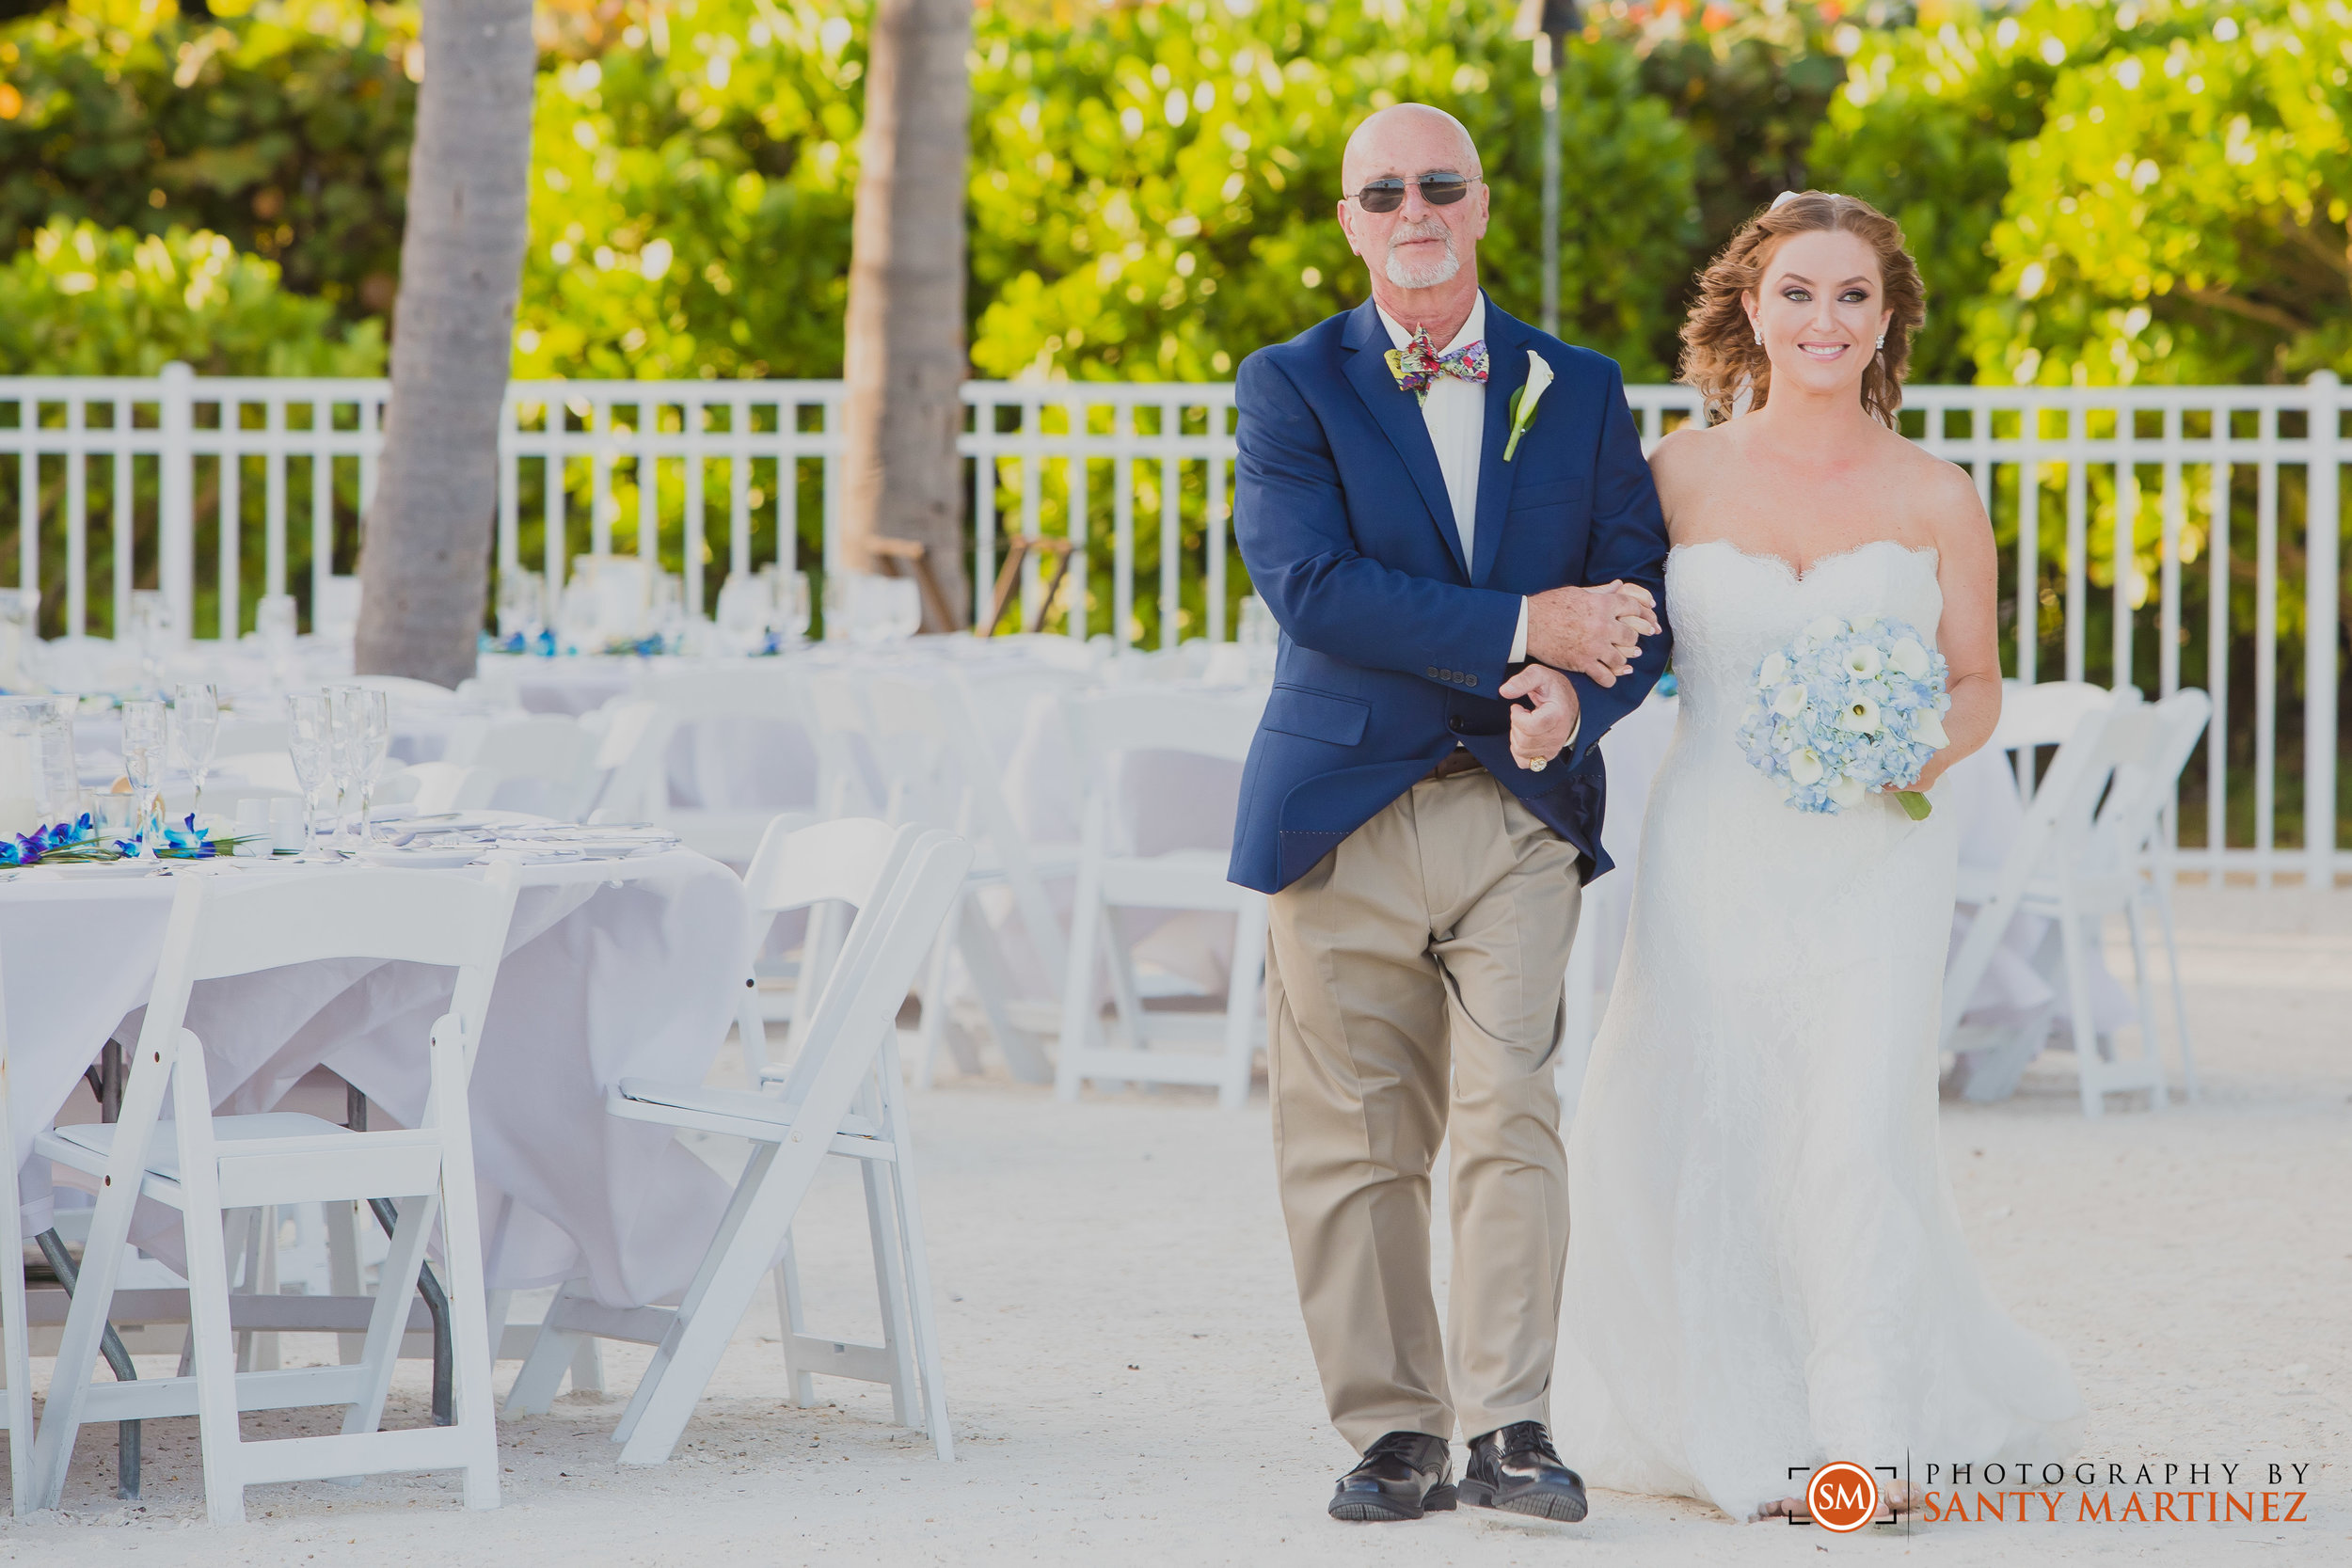 Postcard Inn Islamorada Wedding - Photography by Santy Martinez-0973.jpg